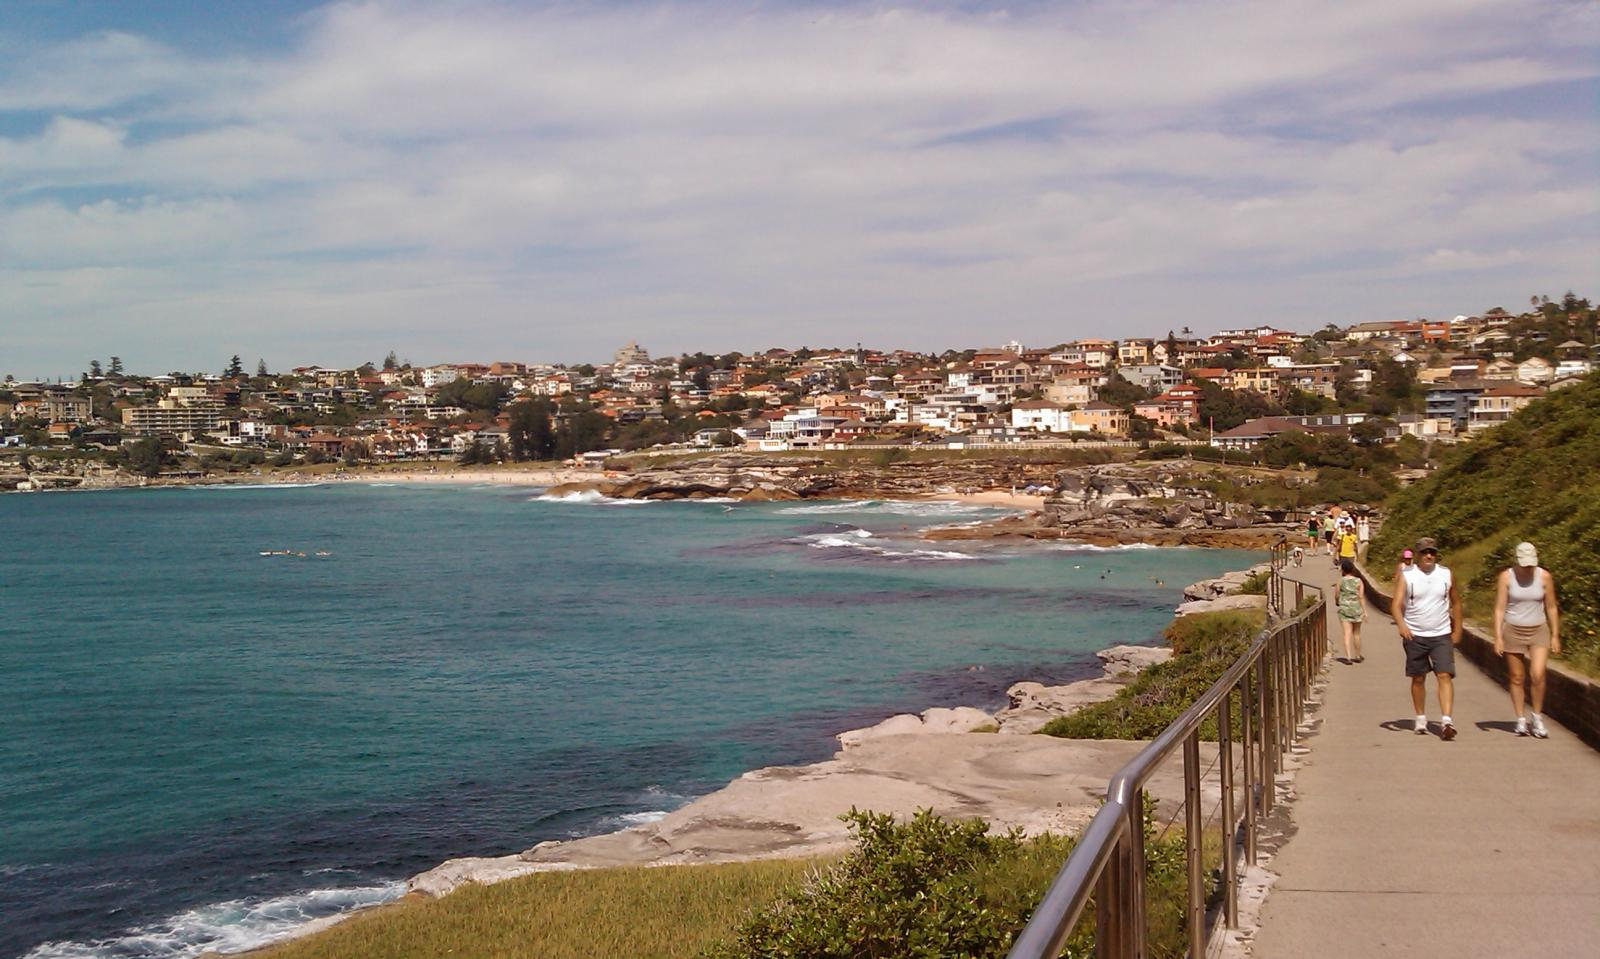 Sydney - coast walk (from Bondi, through Tamarama, Bronte, to Coogee)